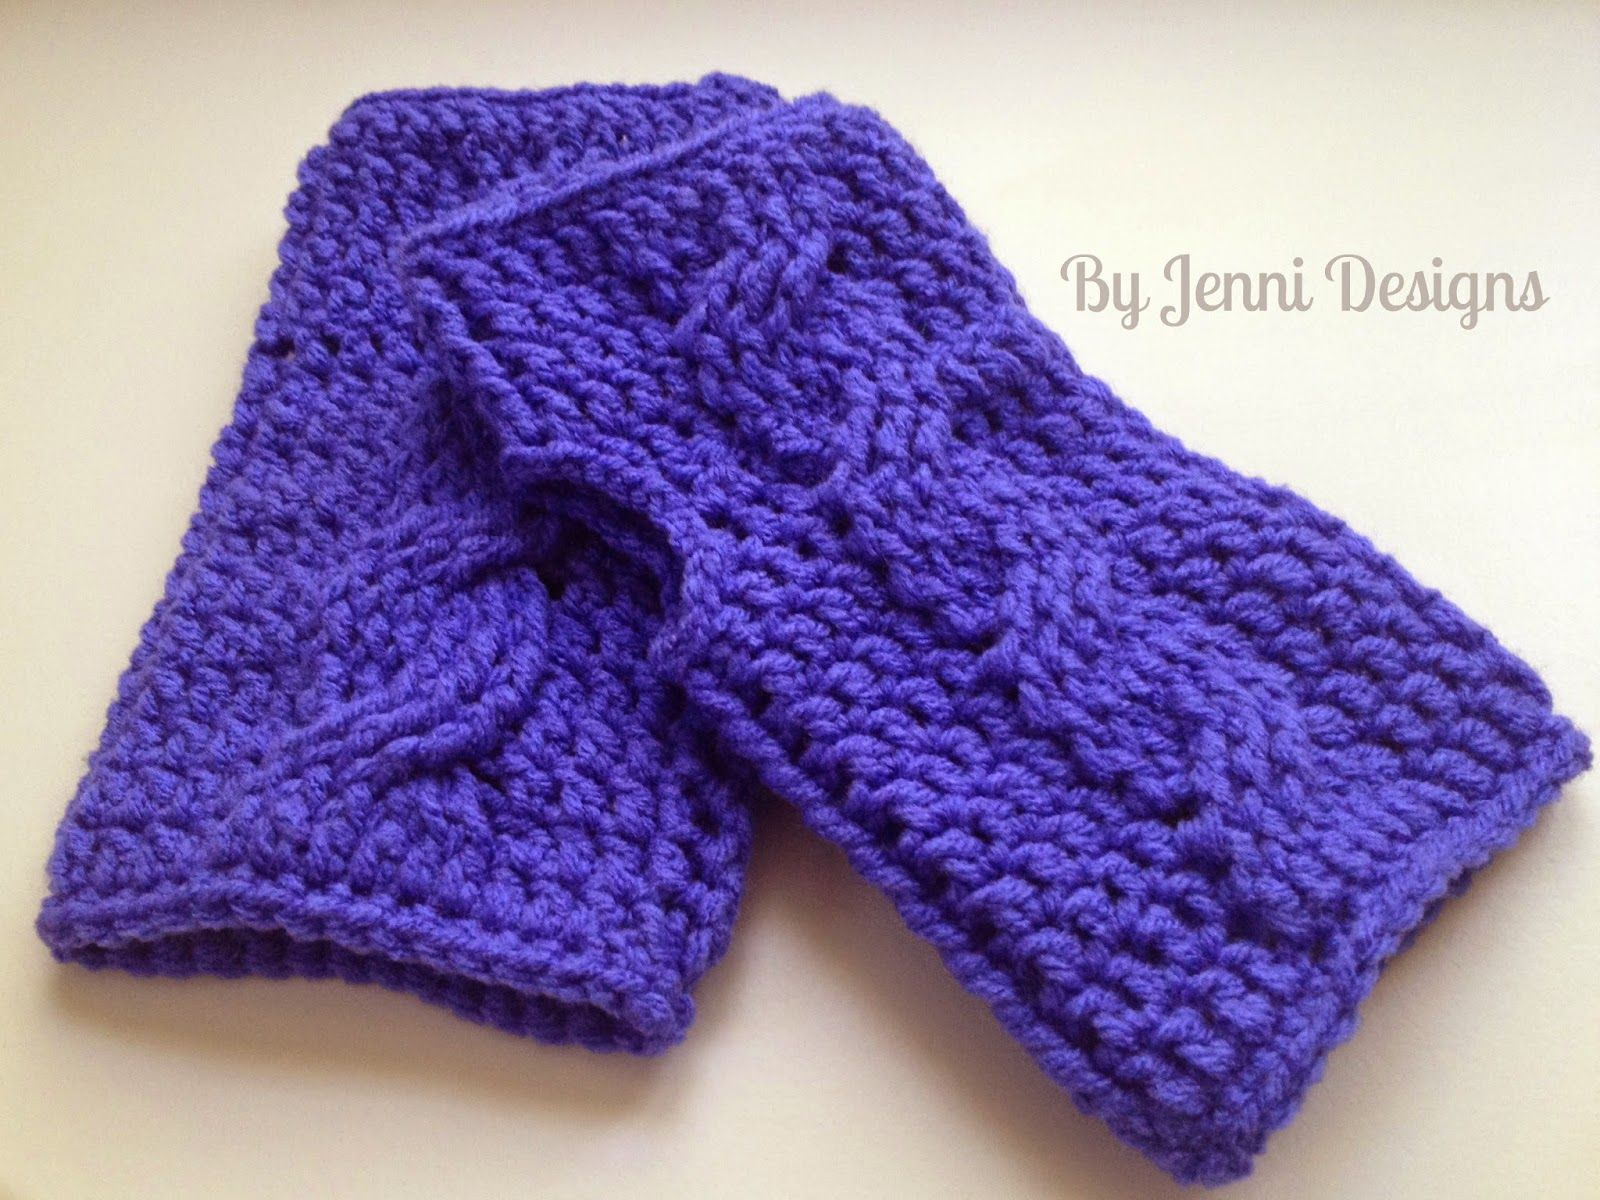 By Jenni Designs Crochet Cable Fingerless Gloves Pattern Crochet Fingerless Gloves Cable Fingerless Gloves Crochet Gloves